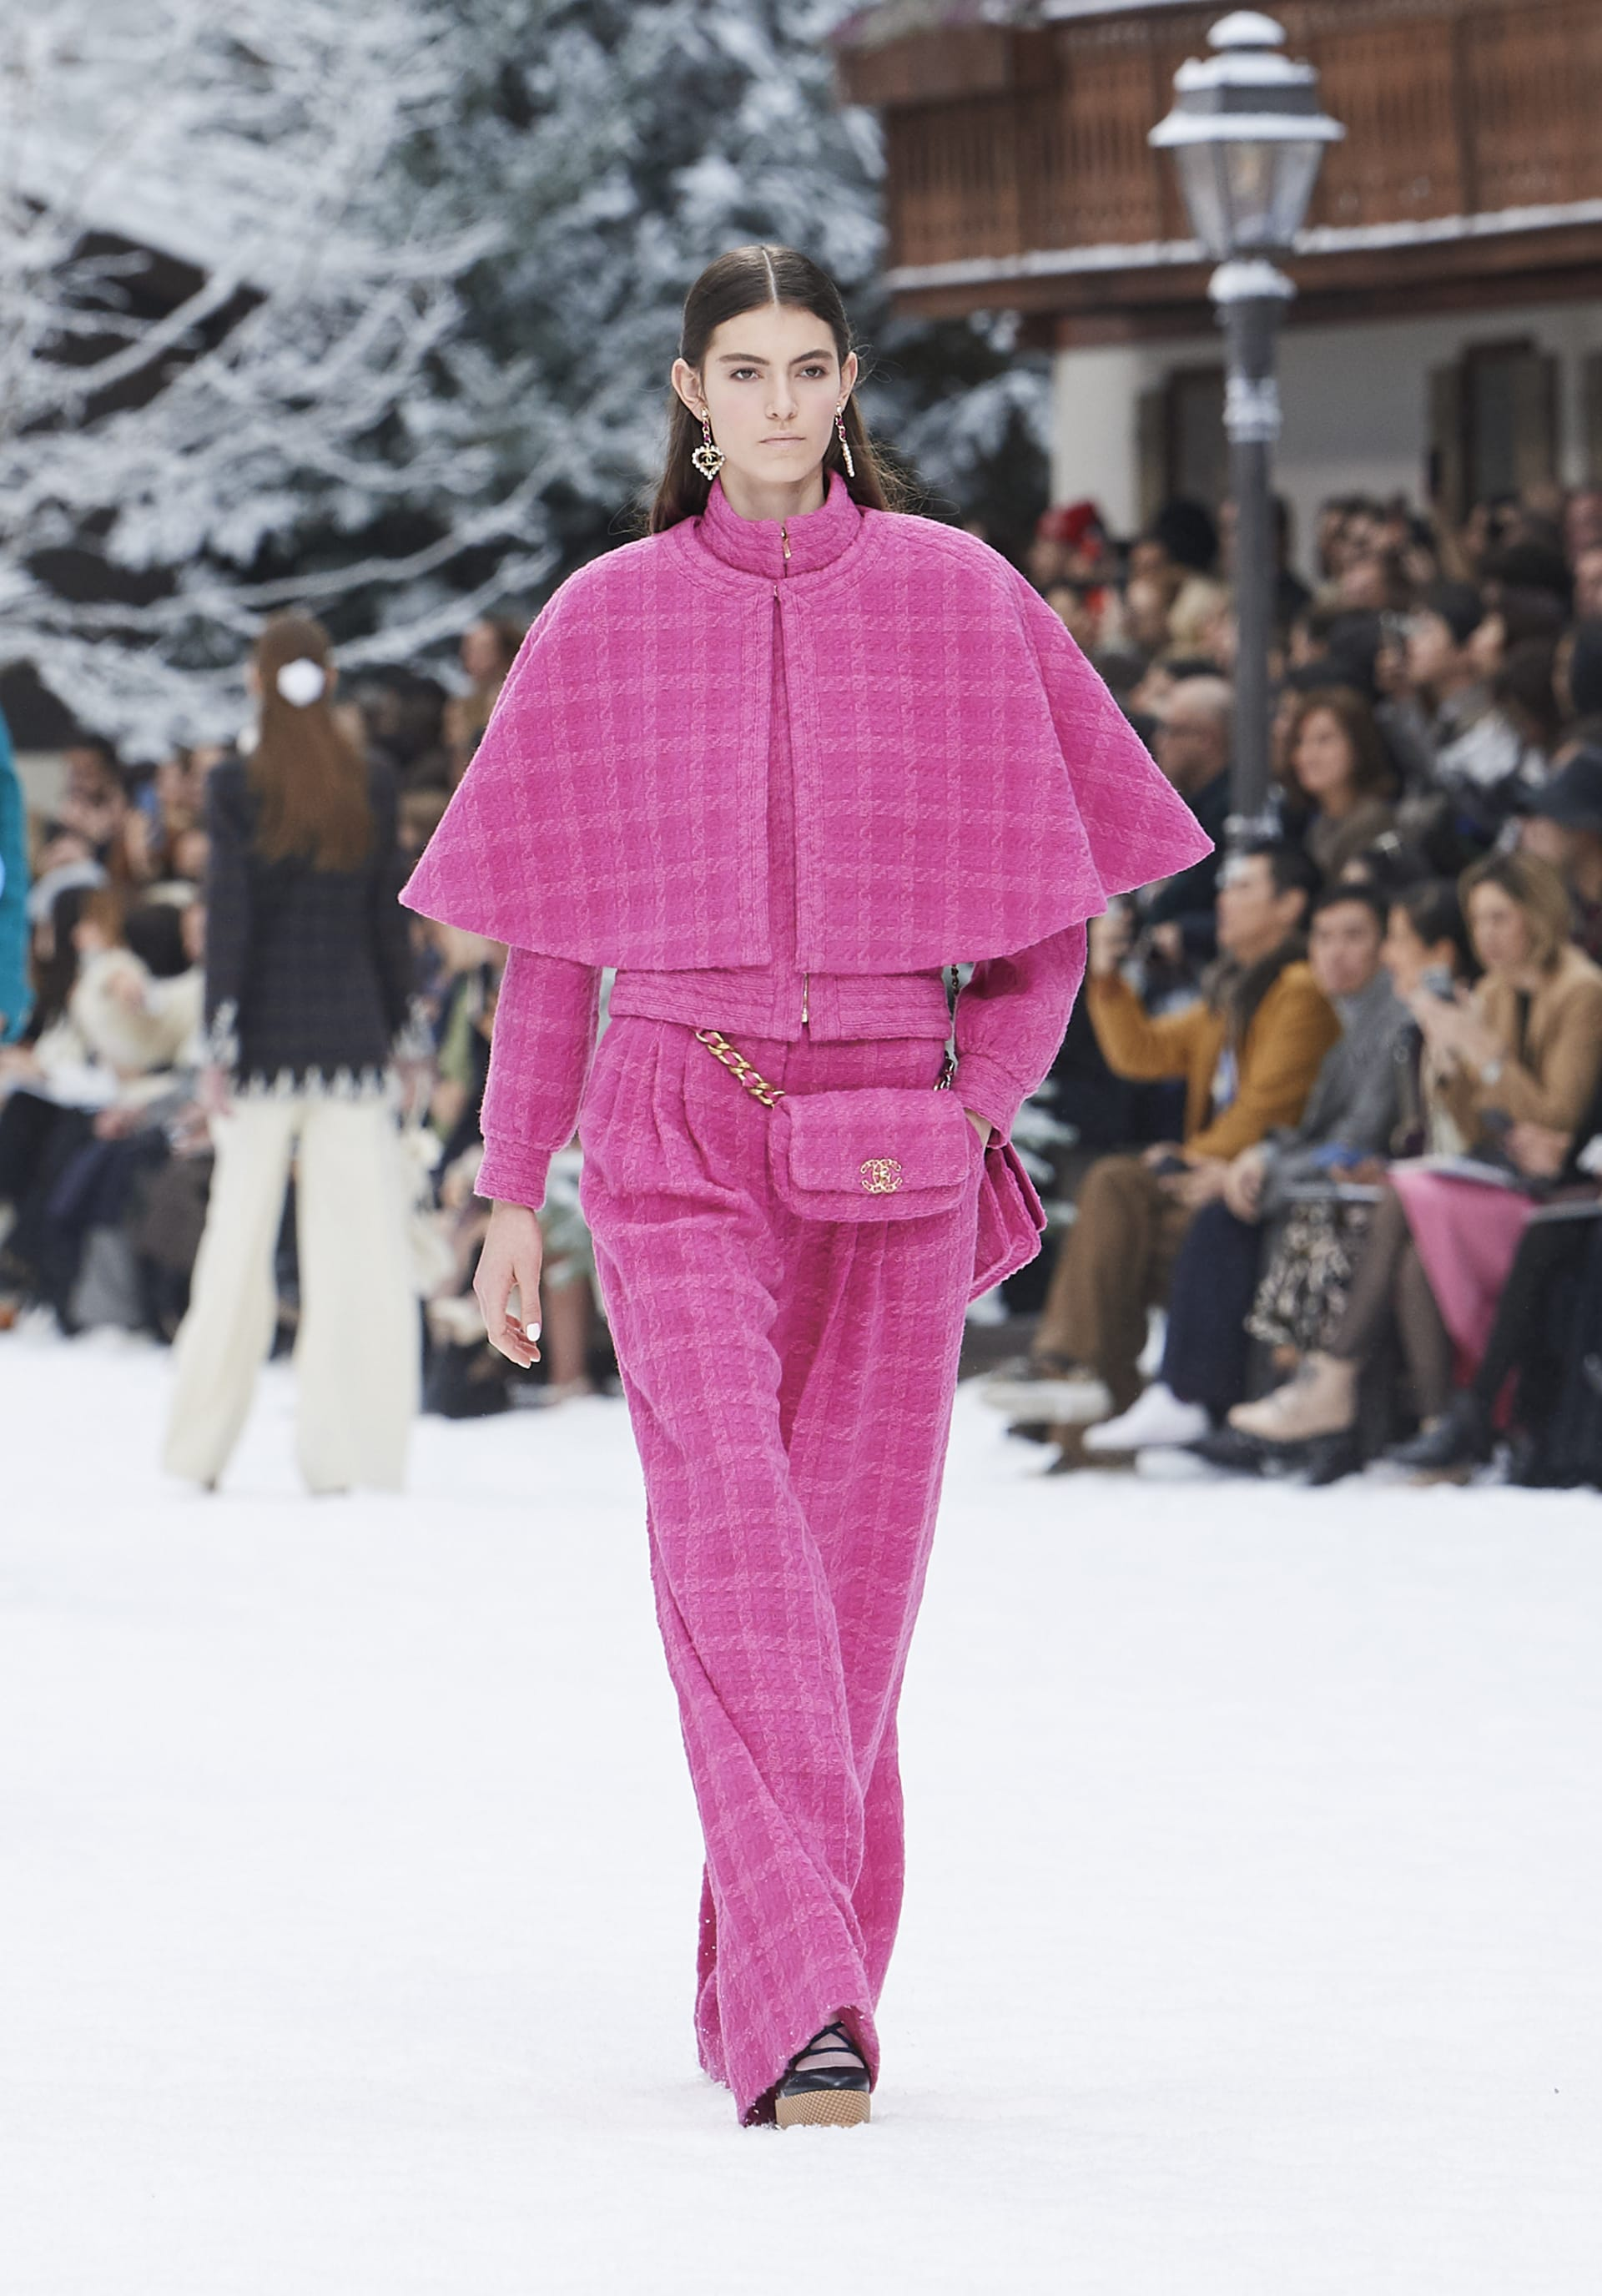 View 1 - Look 40 - Fall-Winter 2019/20